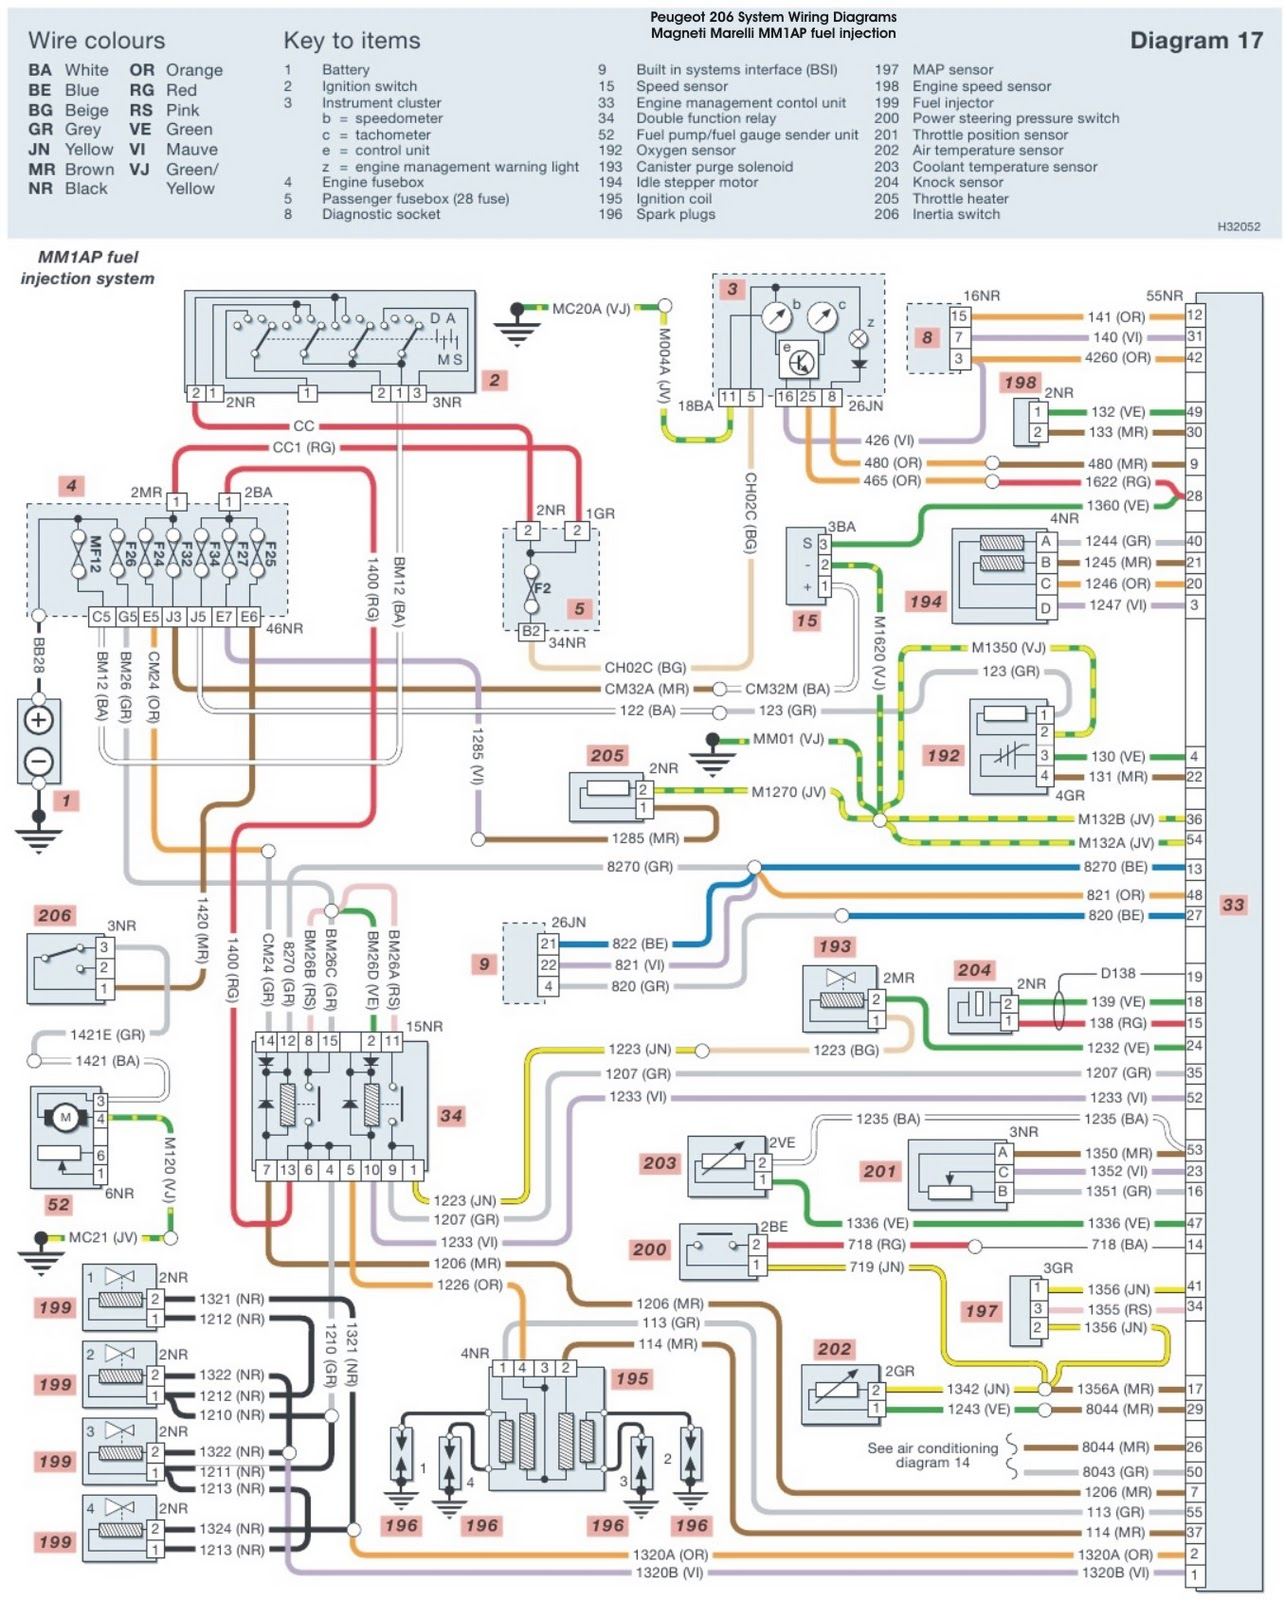 peugeot 206 wiring diagram download schema diagram database peugeot 206 wiring diagram download [ 1284 x 1600 Pixel ]